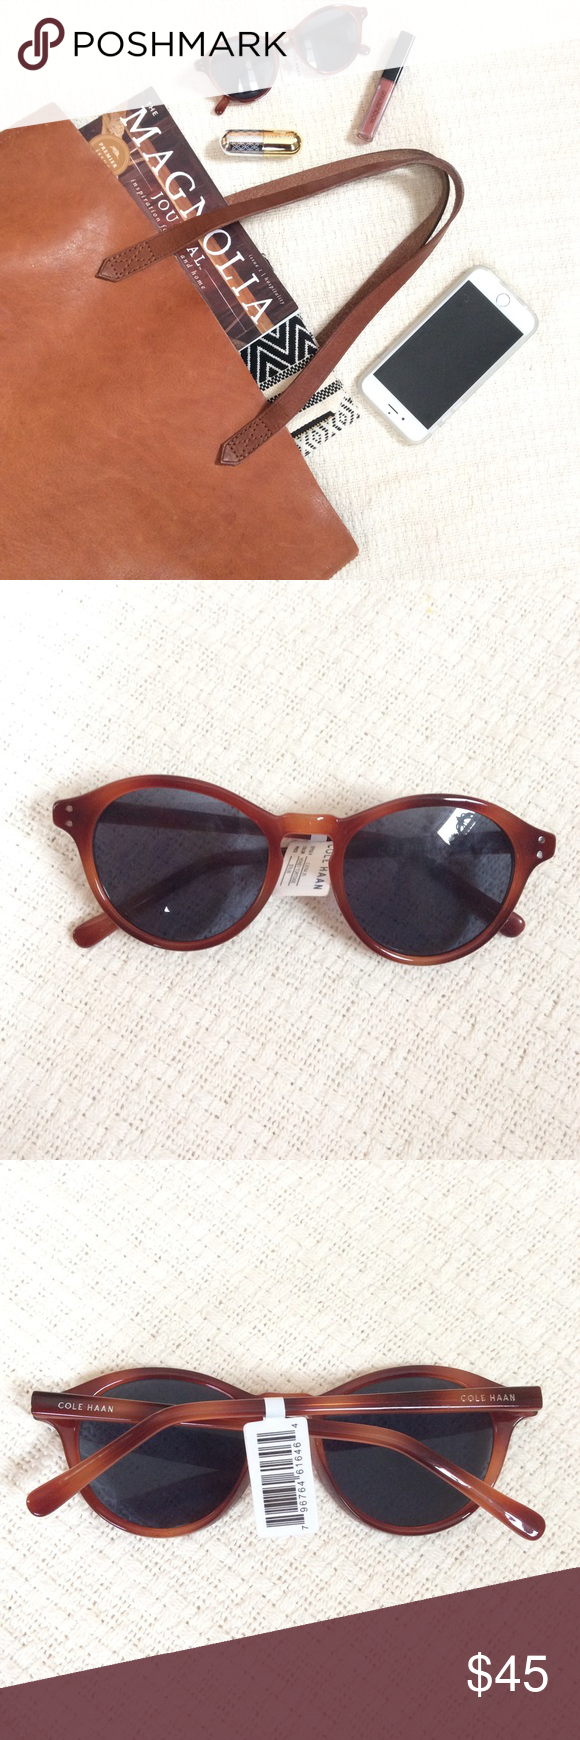 fb3eb3a8dd8 🆕 Listing  Cole Haan Round Sunnies Round tortoise shell sunglasses by Cole  Haan. In Honey Tortoise